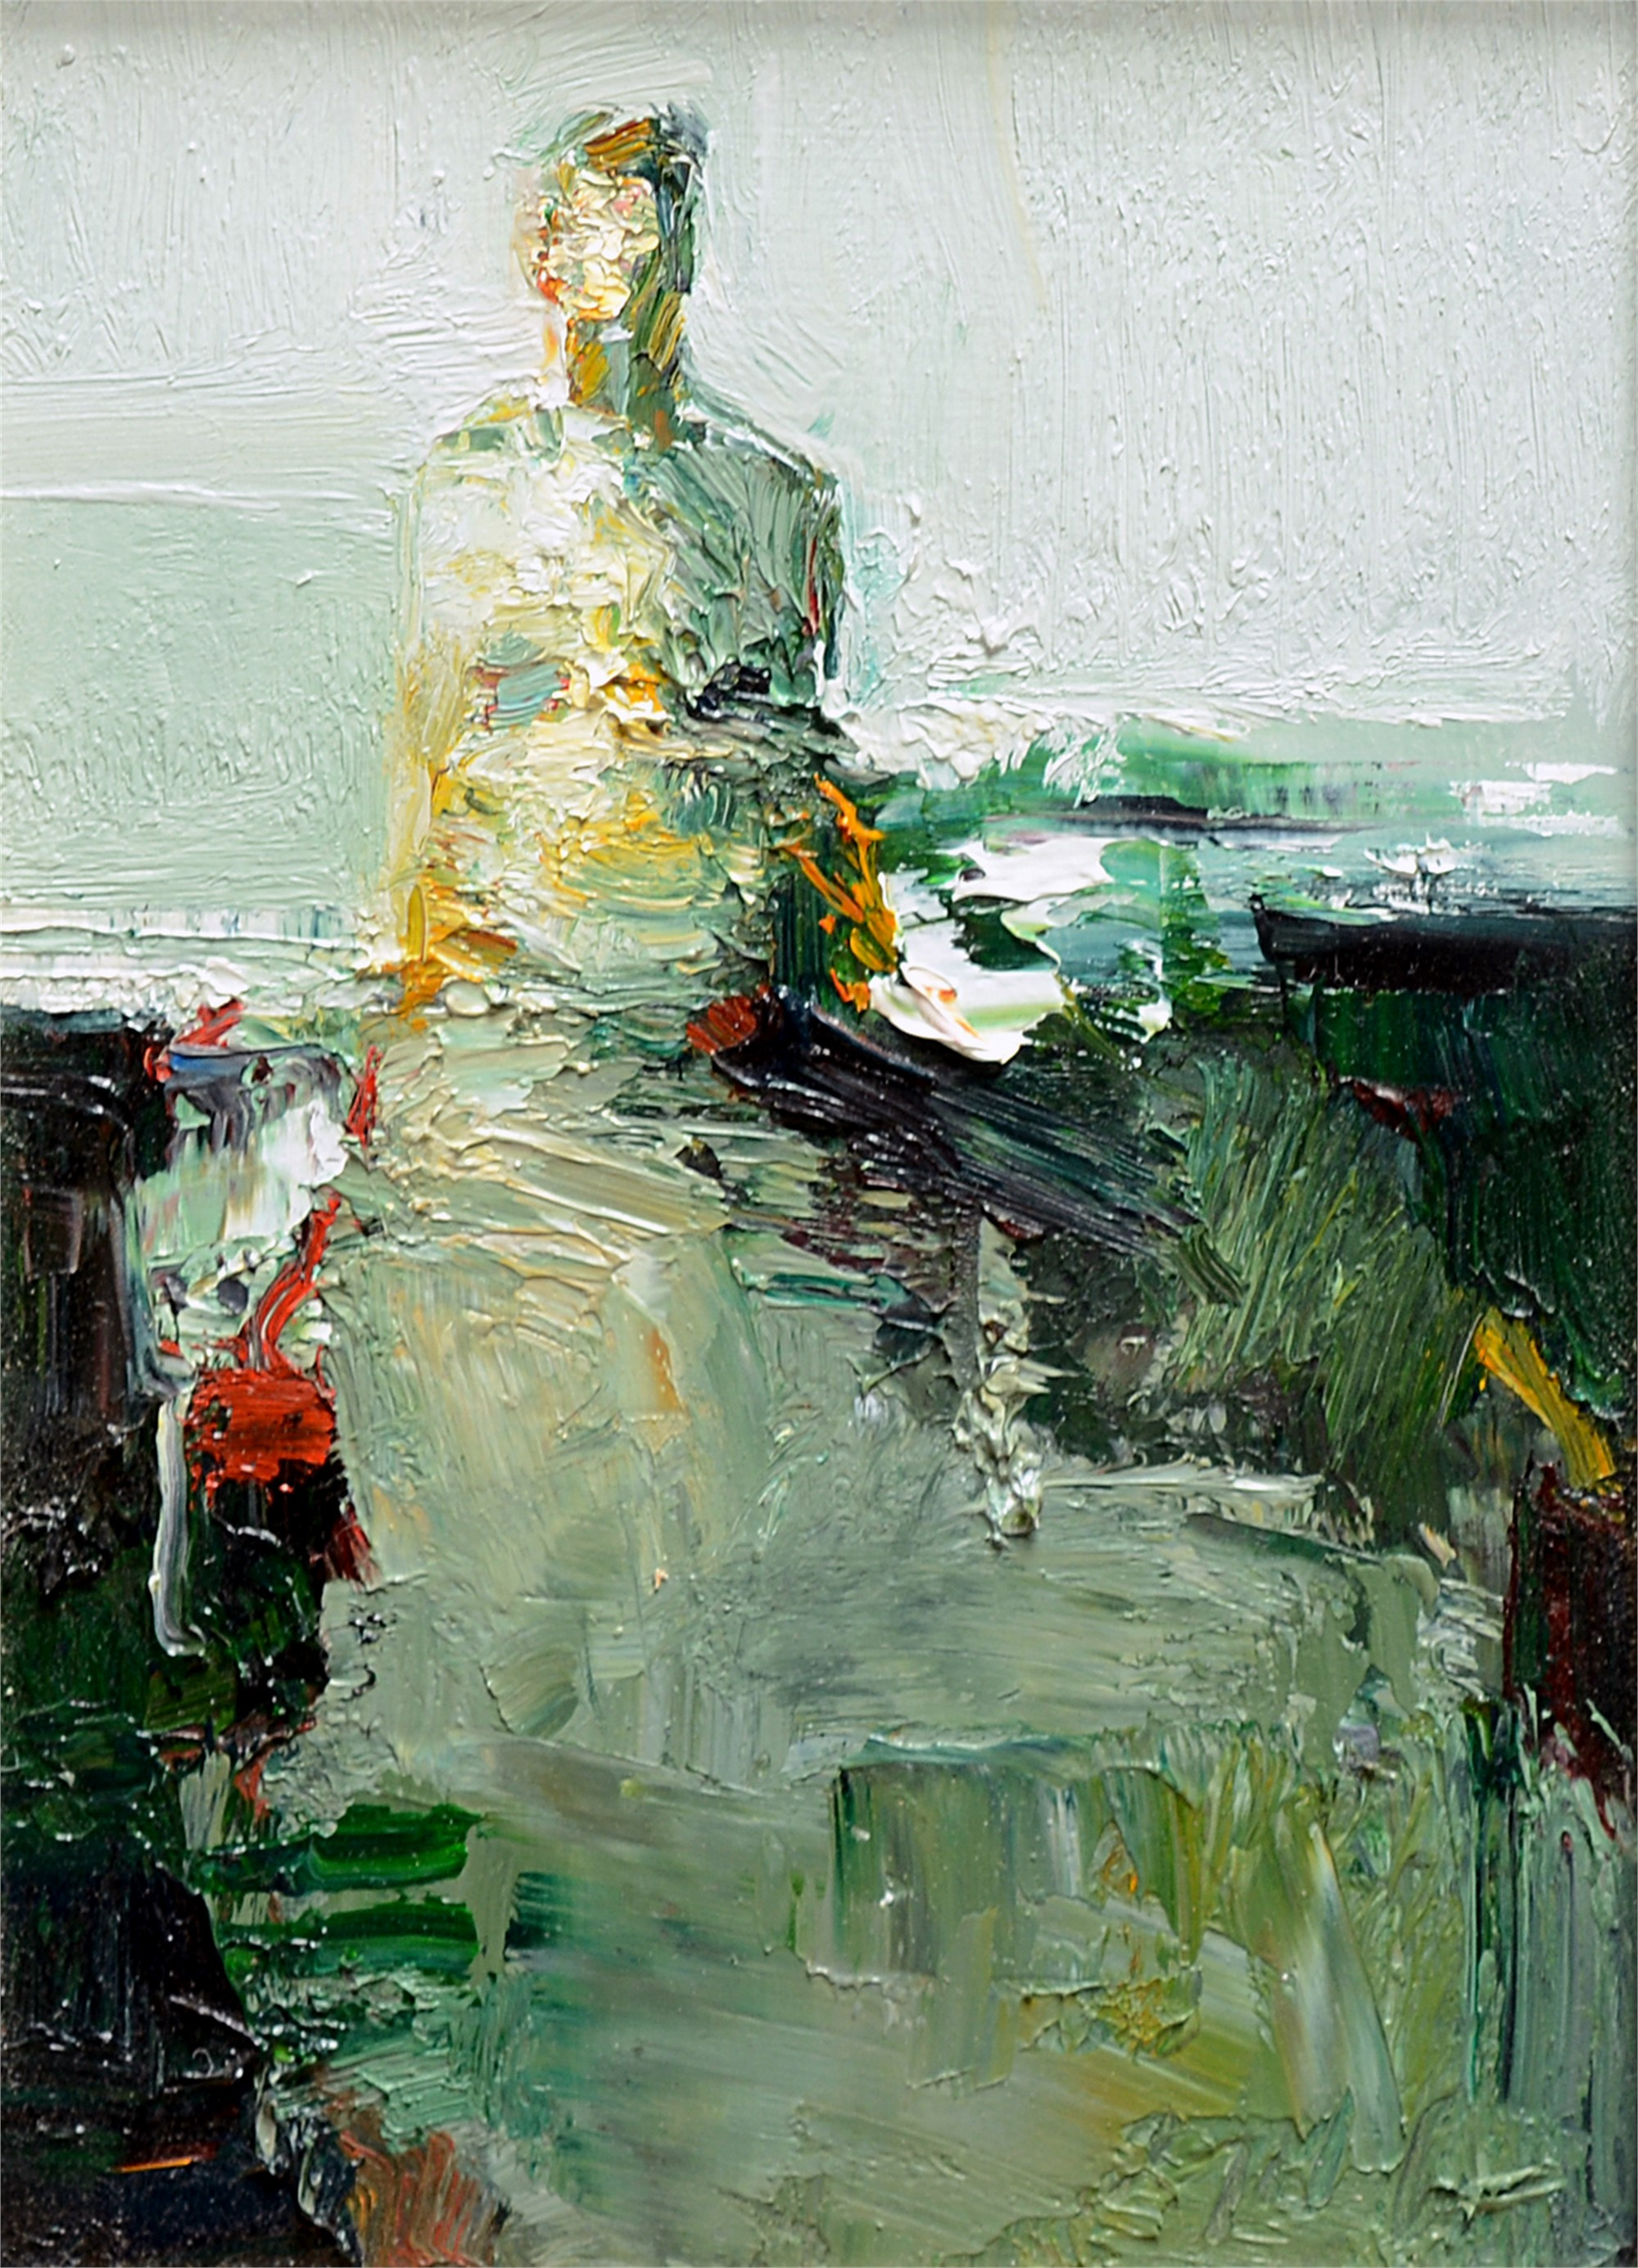 Woman in Dress by Danny McCaw